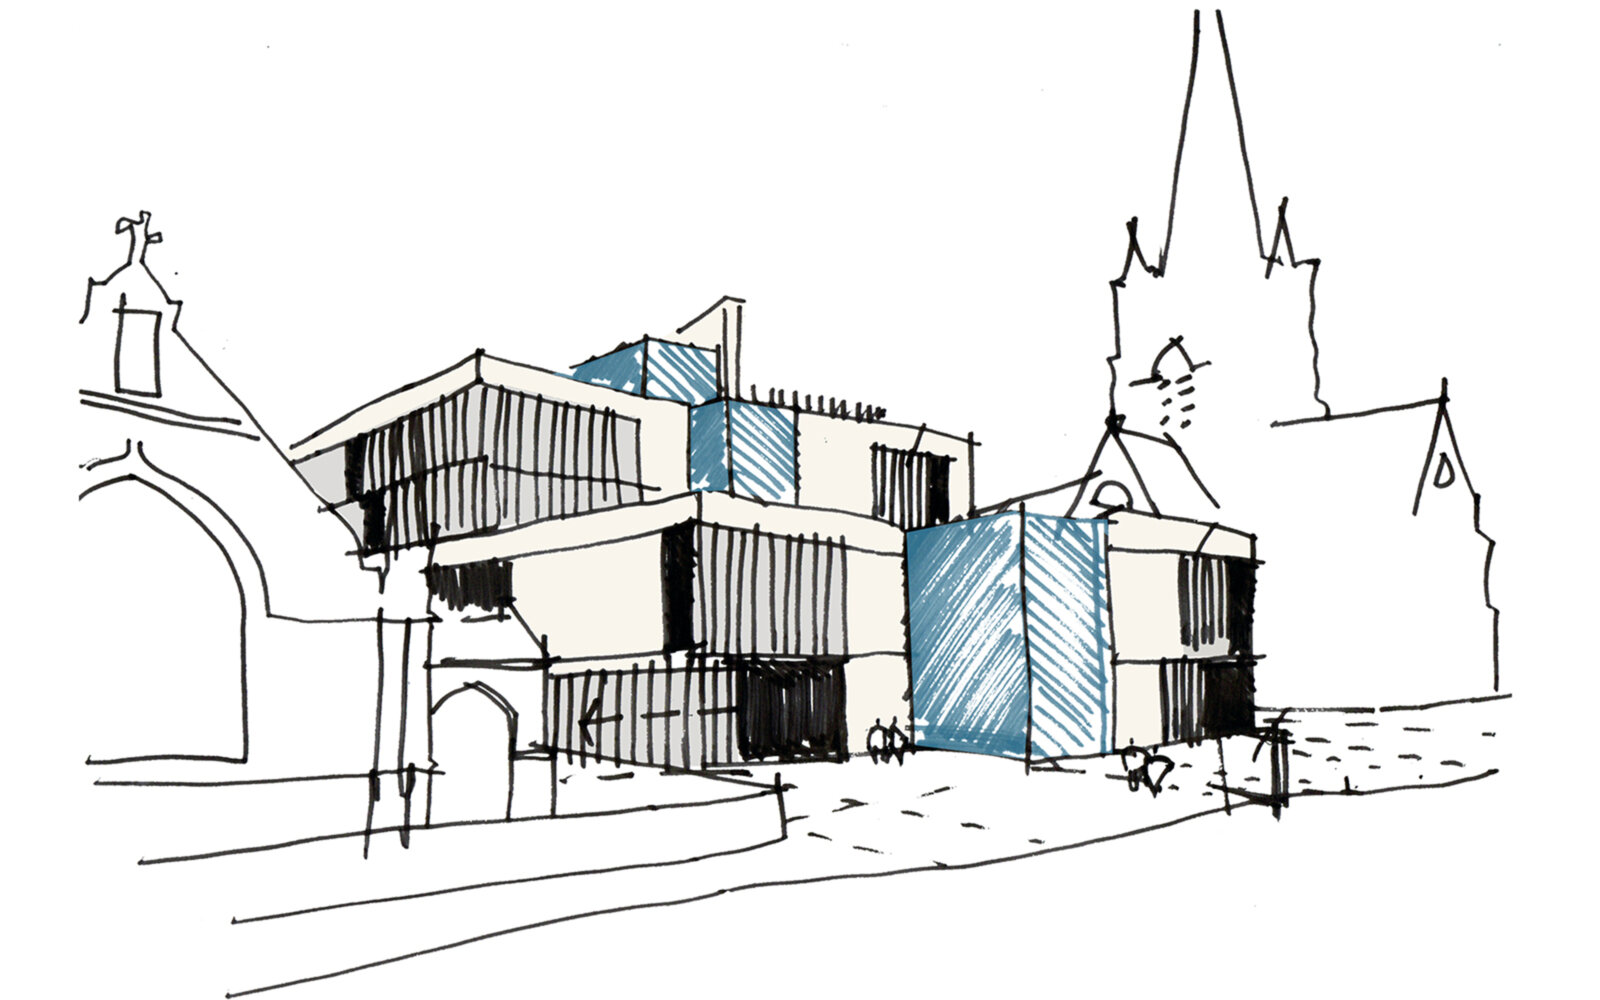 The Laidlaw Library exterior sketch